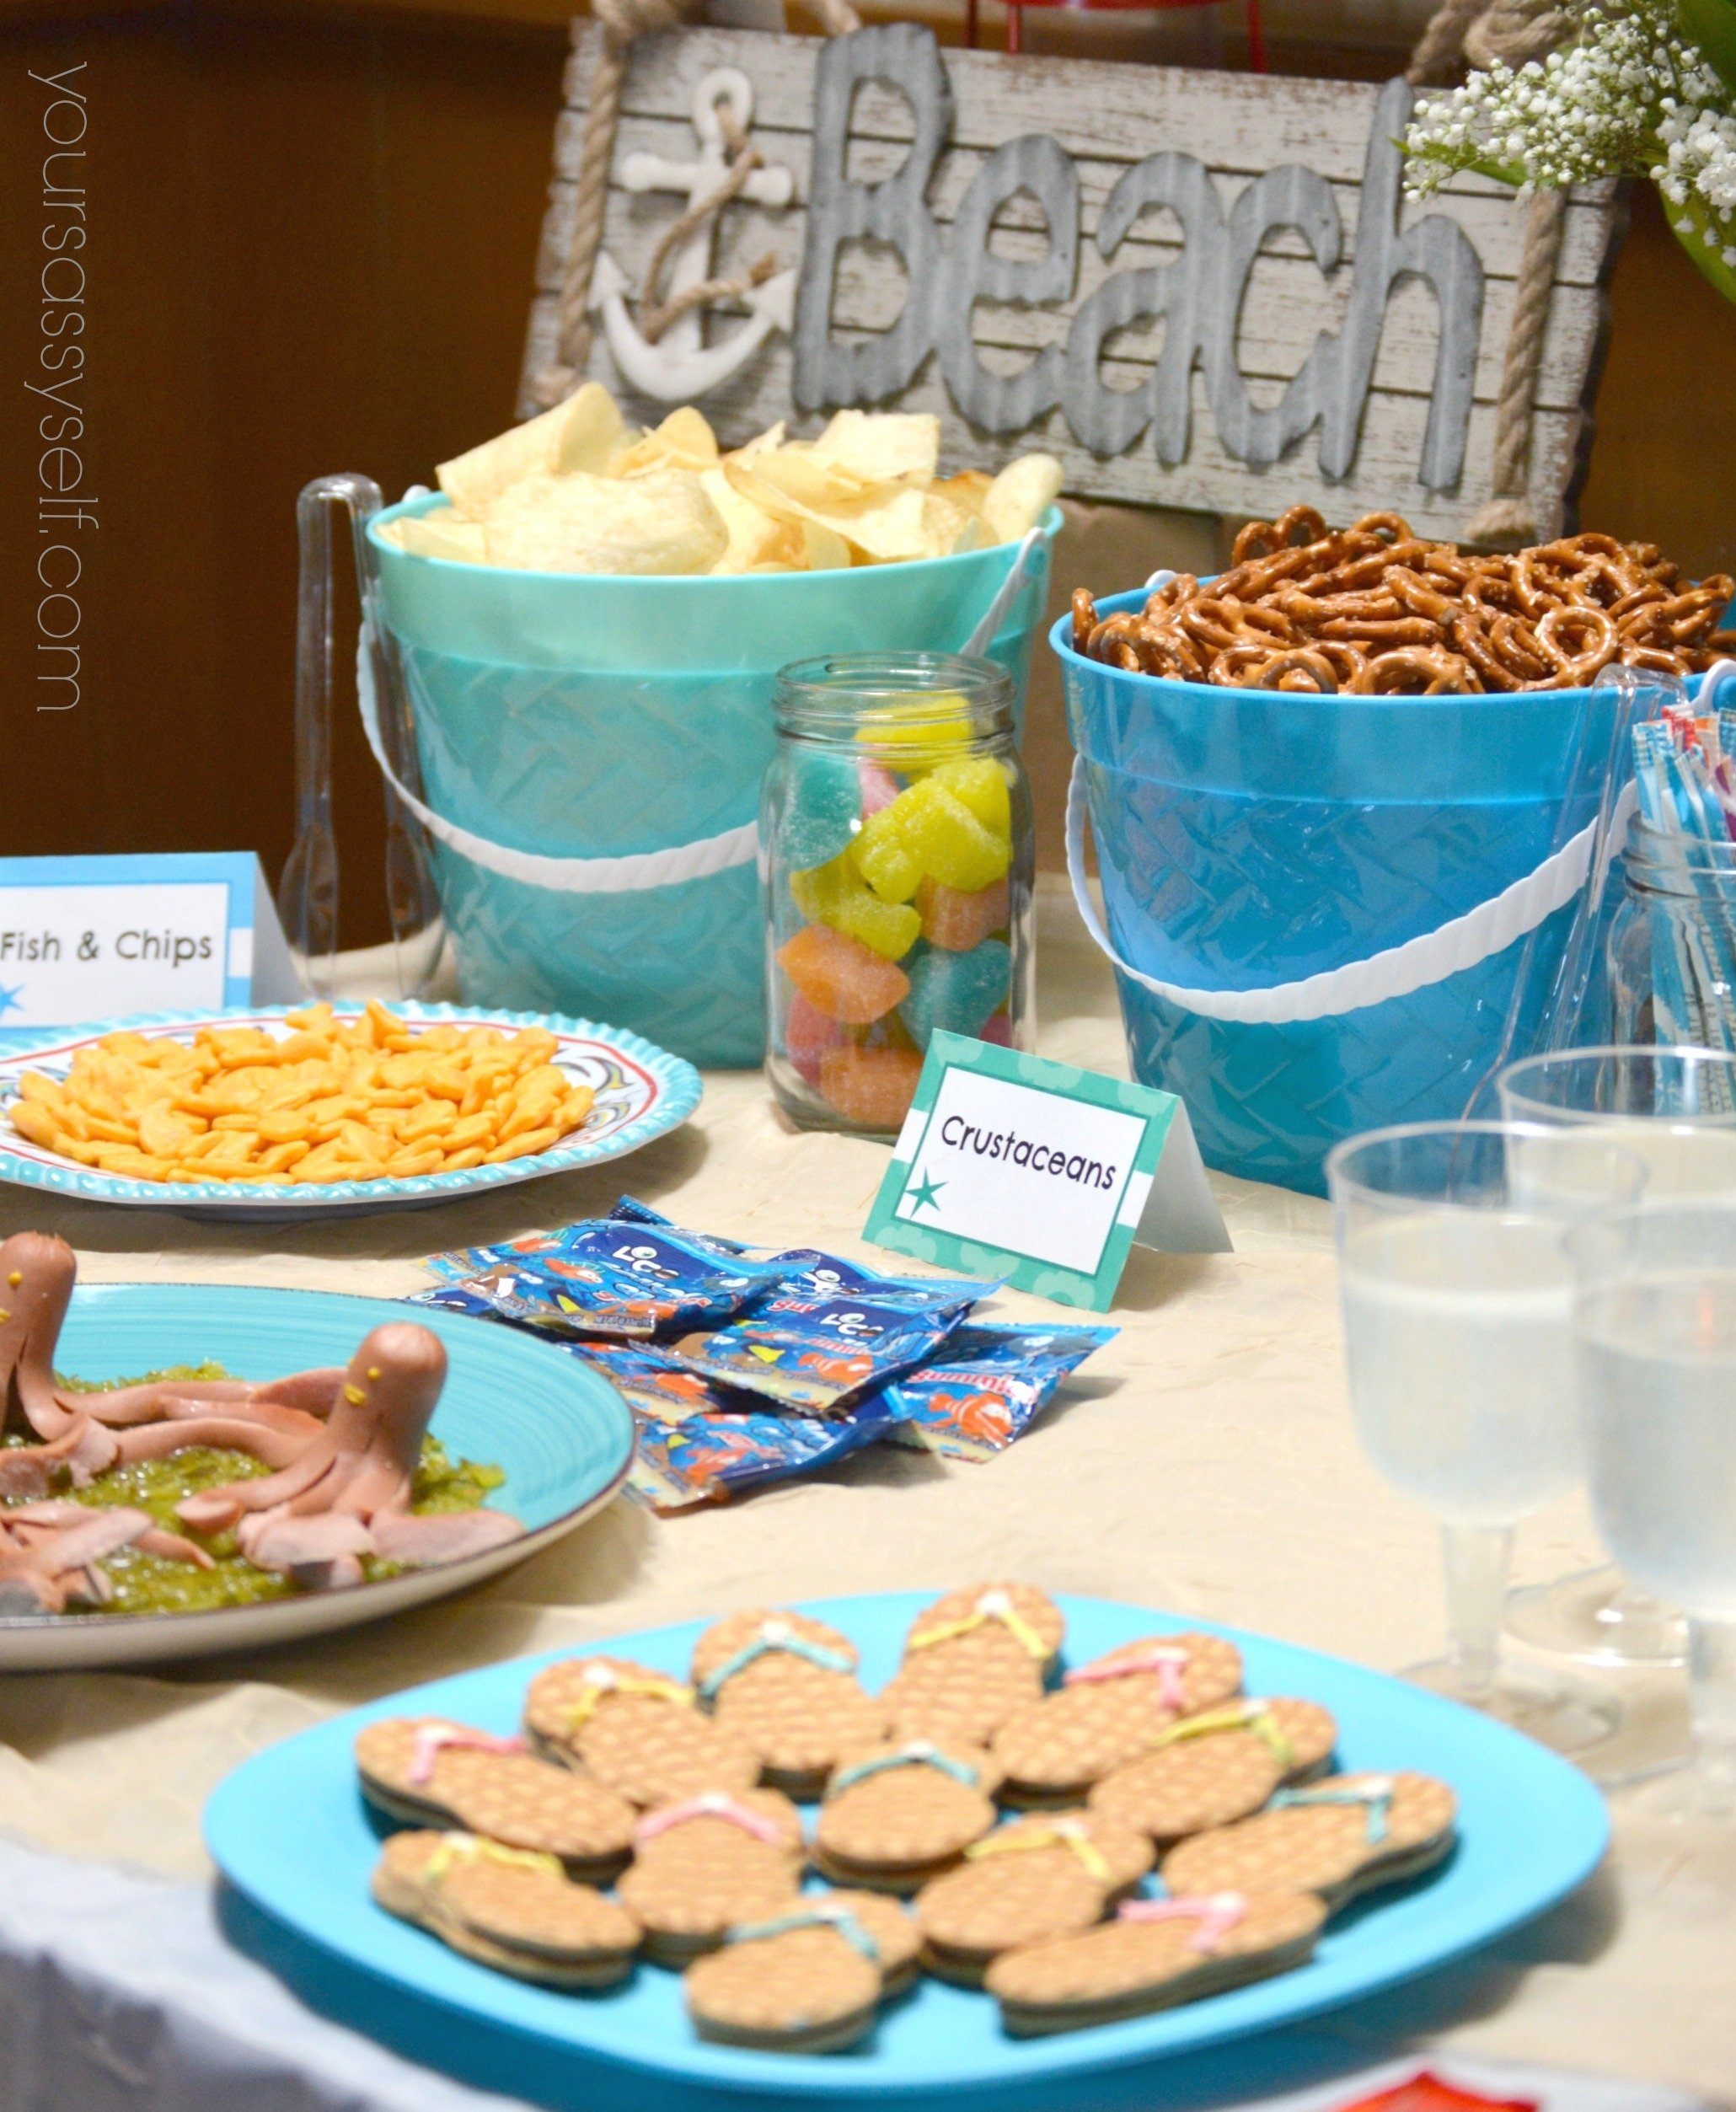 10 Spectacular Fun Party Ideas For Adults fun birthday beach party ideas for any age your sassy self 2 2020